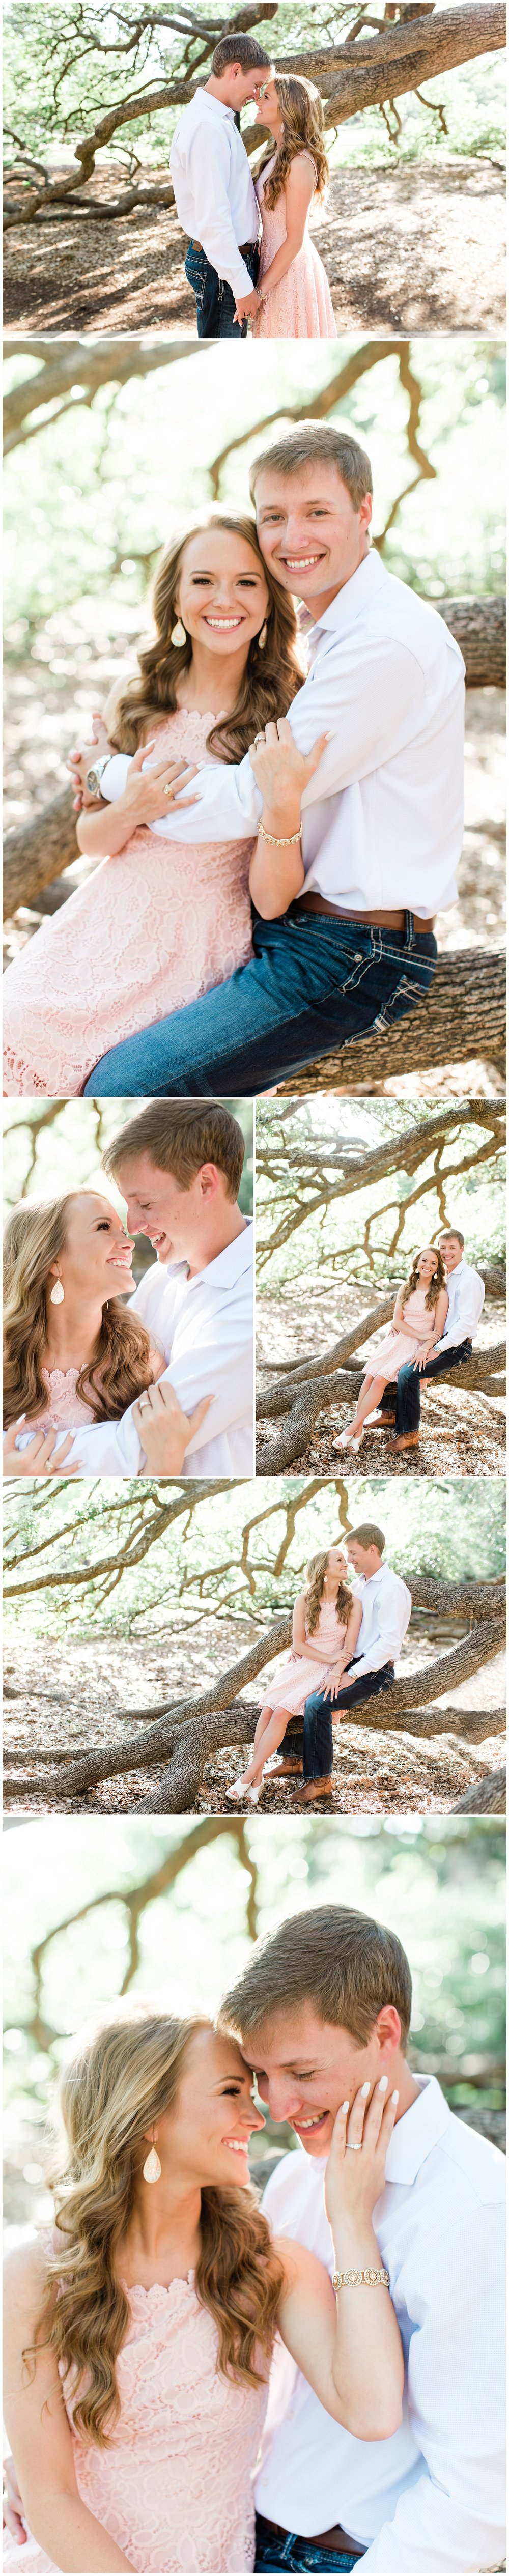 Texas_A&M_Engagement_Session_Kristina_Ross_Photography_0002.jpg